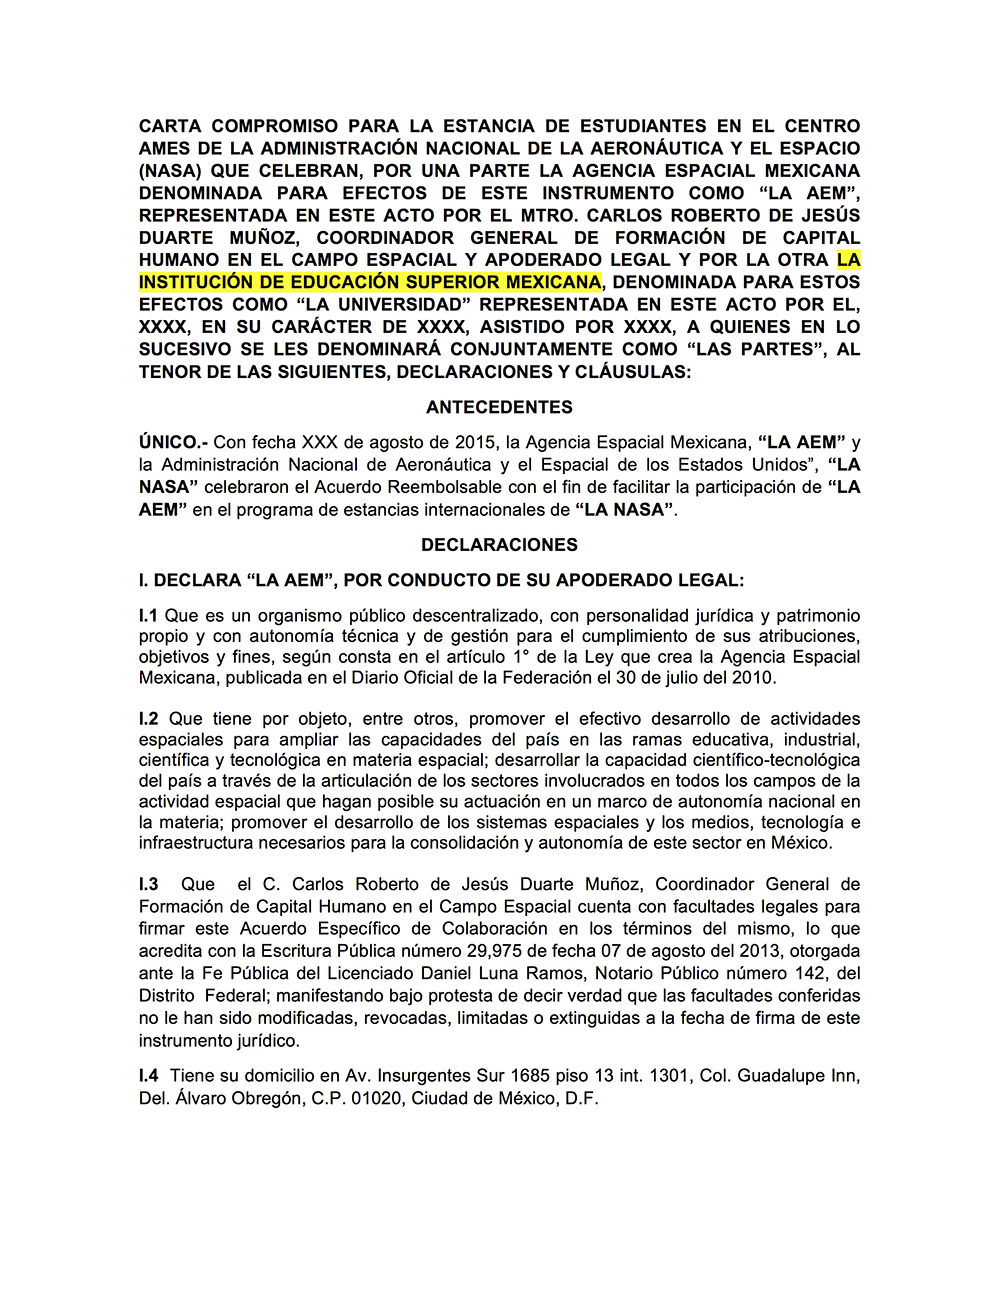 Documento Anexo cinco Carta compromiso institucional para dosmildiezyseis en formato word editable